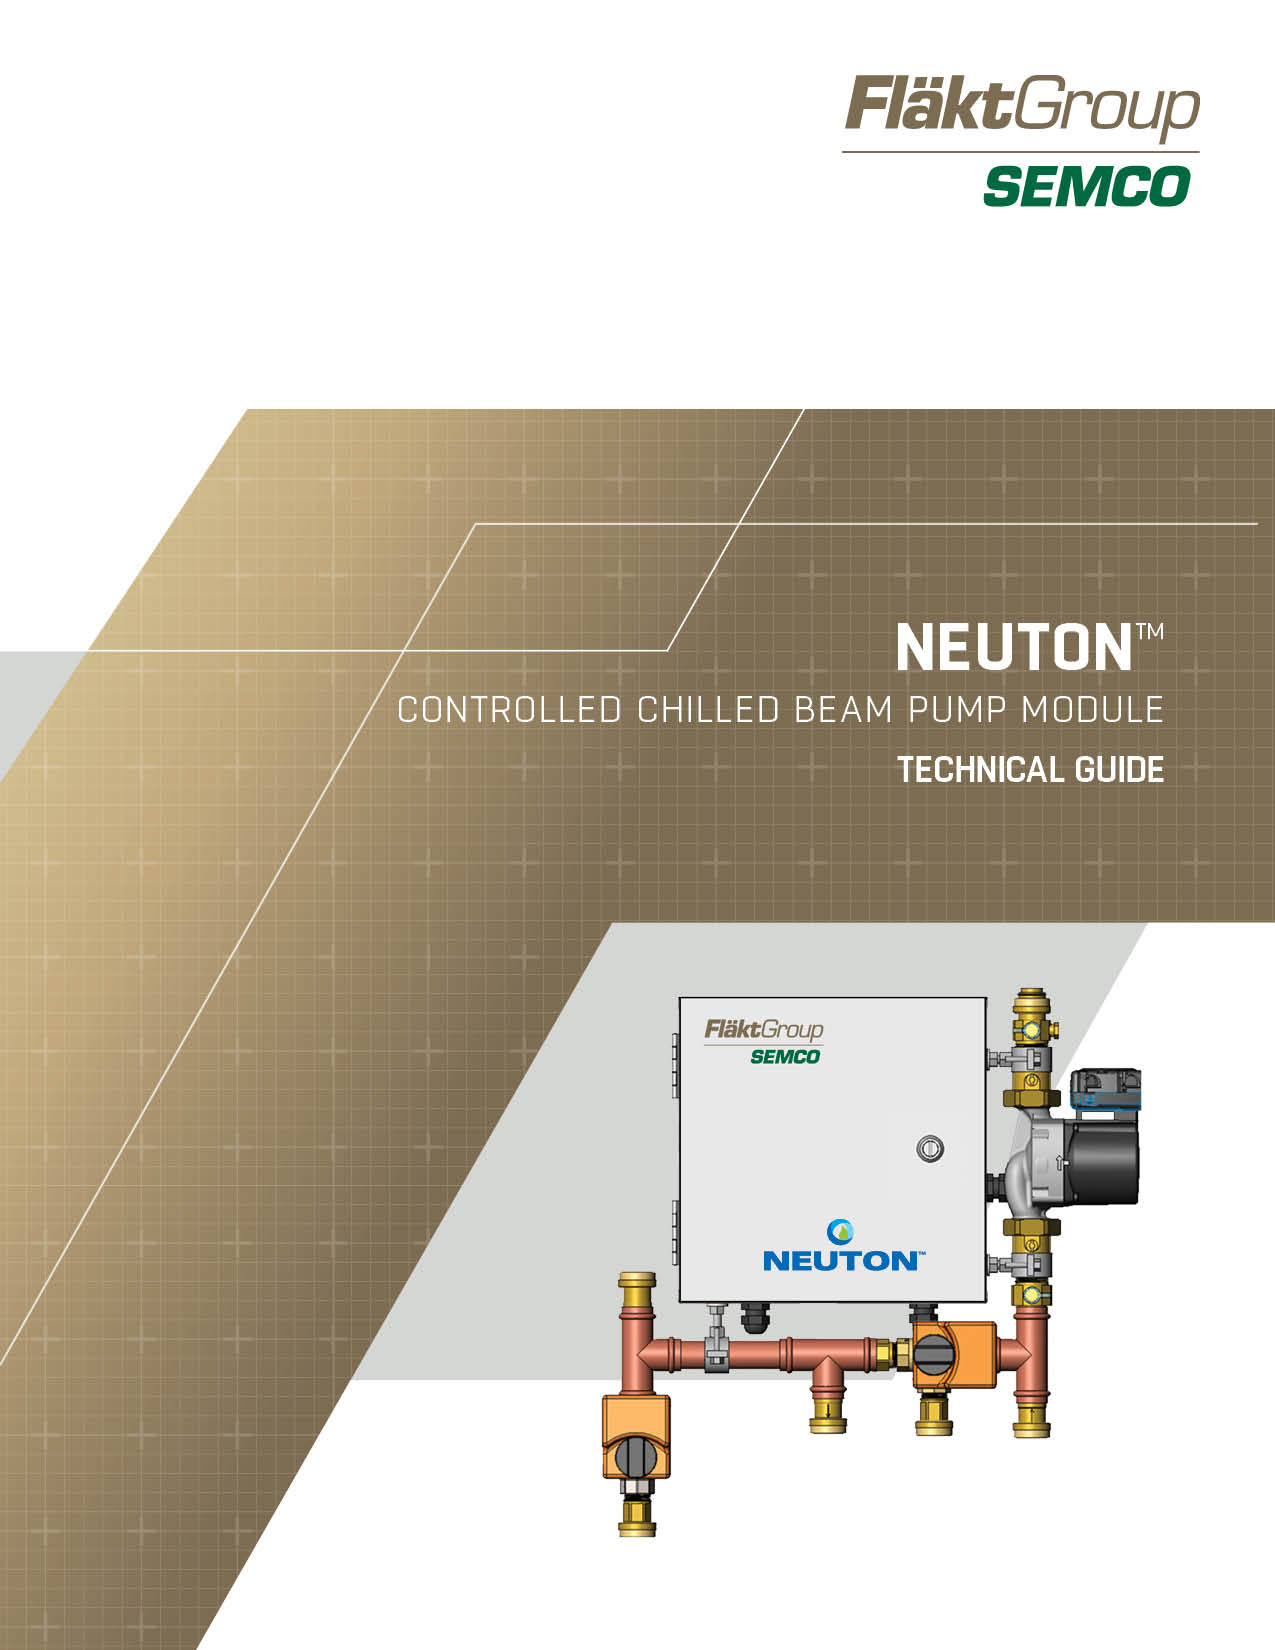 SEMCO_NEUTON_Technical_Guide_Page_01.jpg